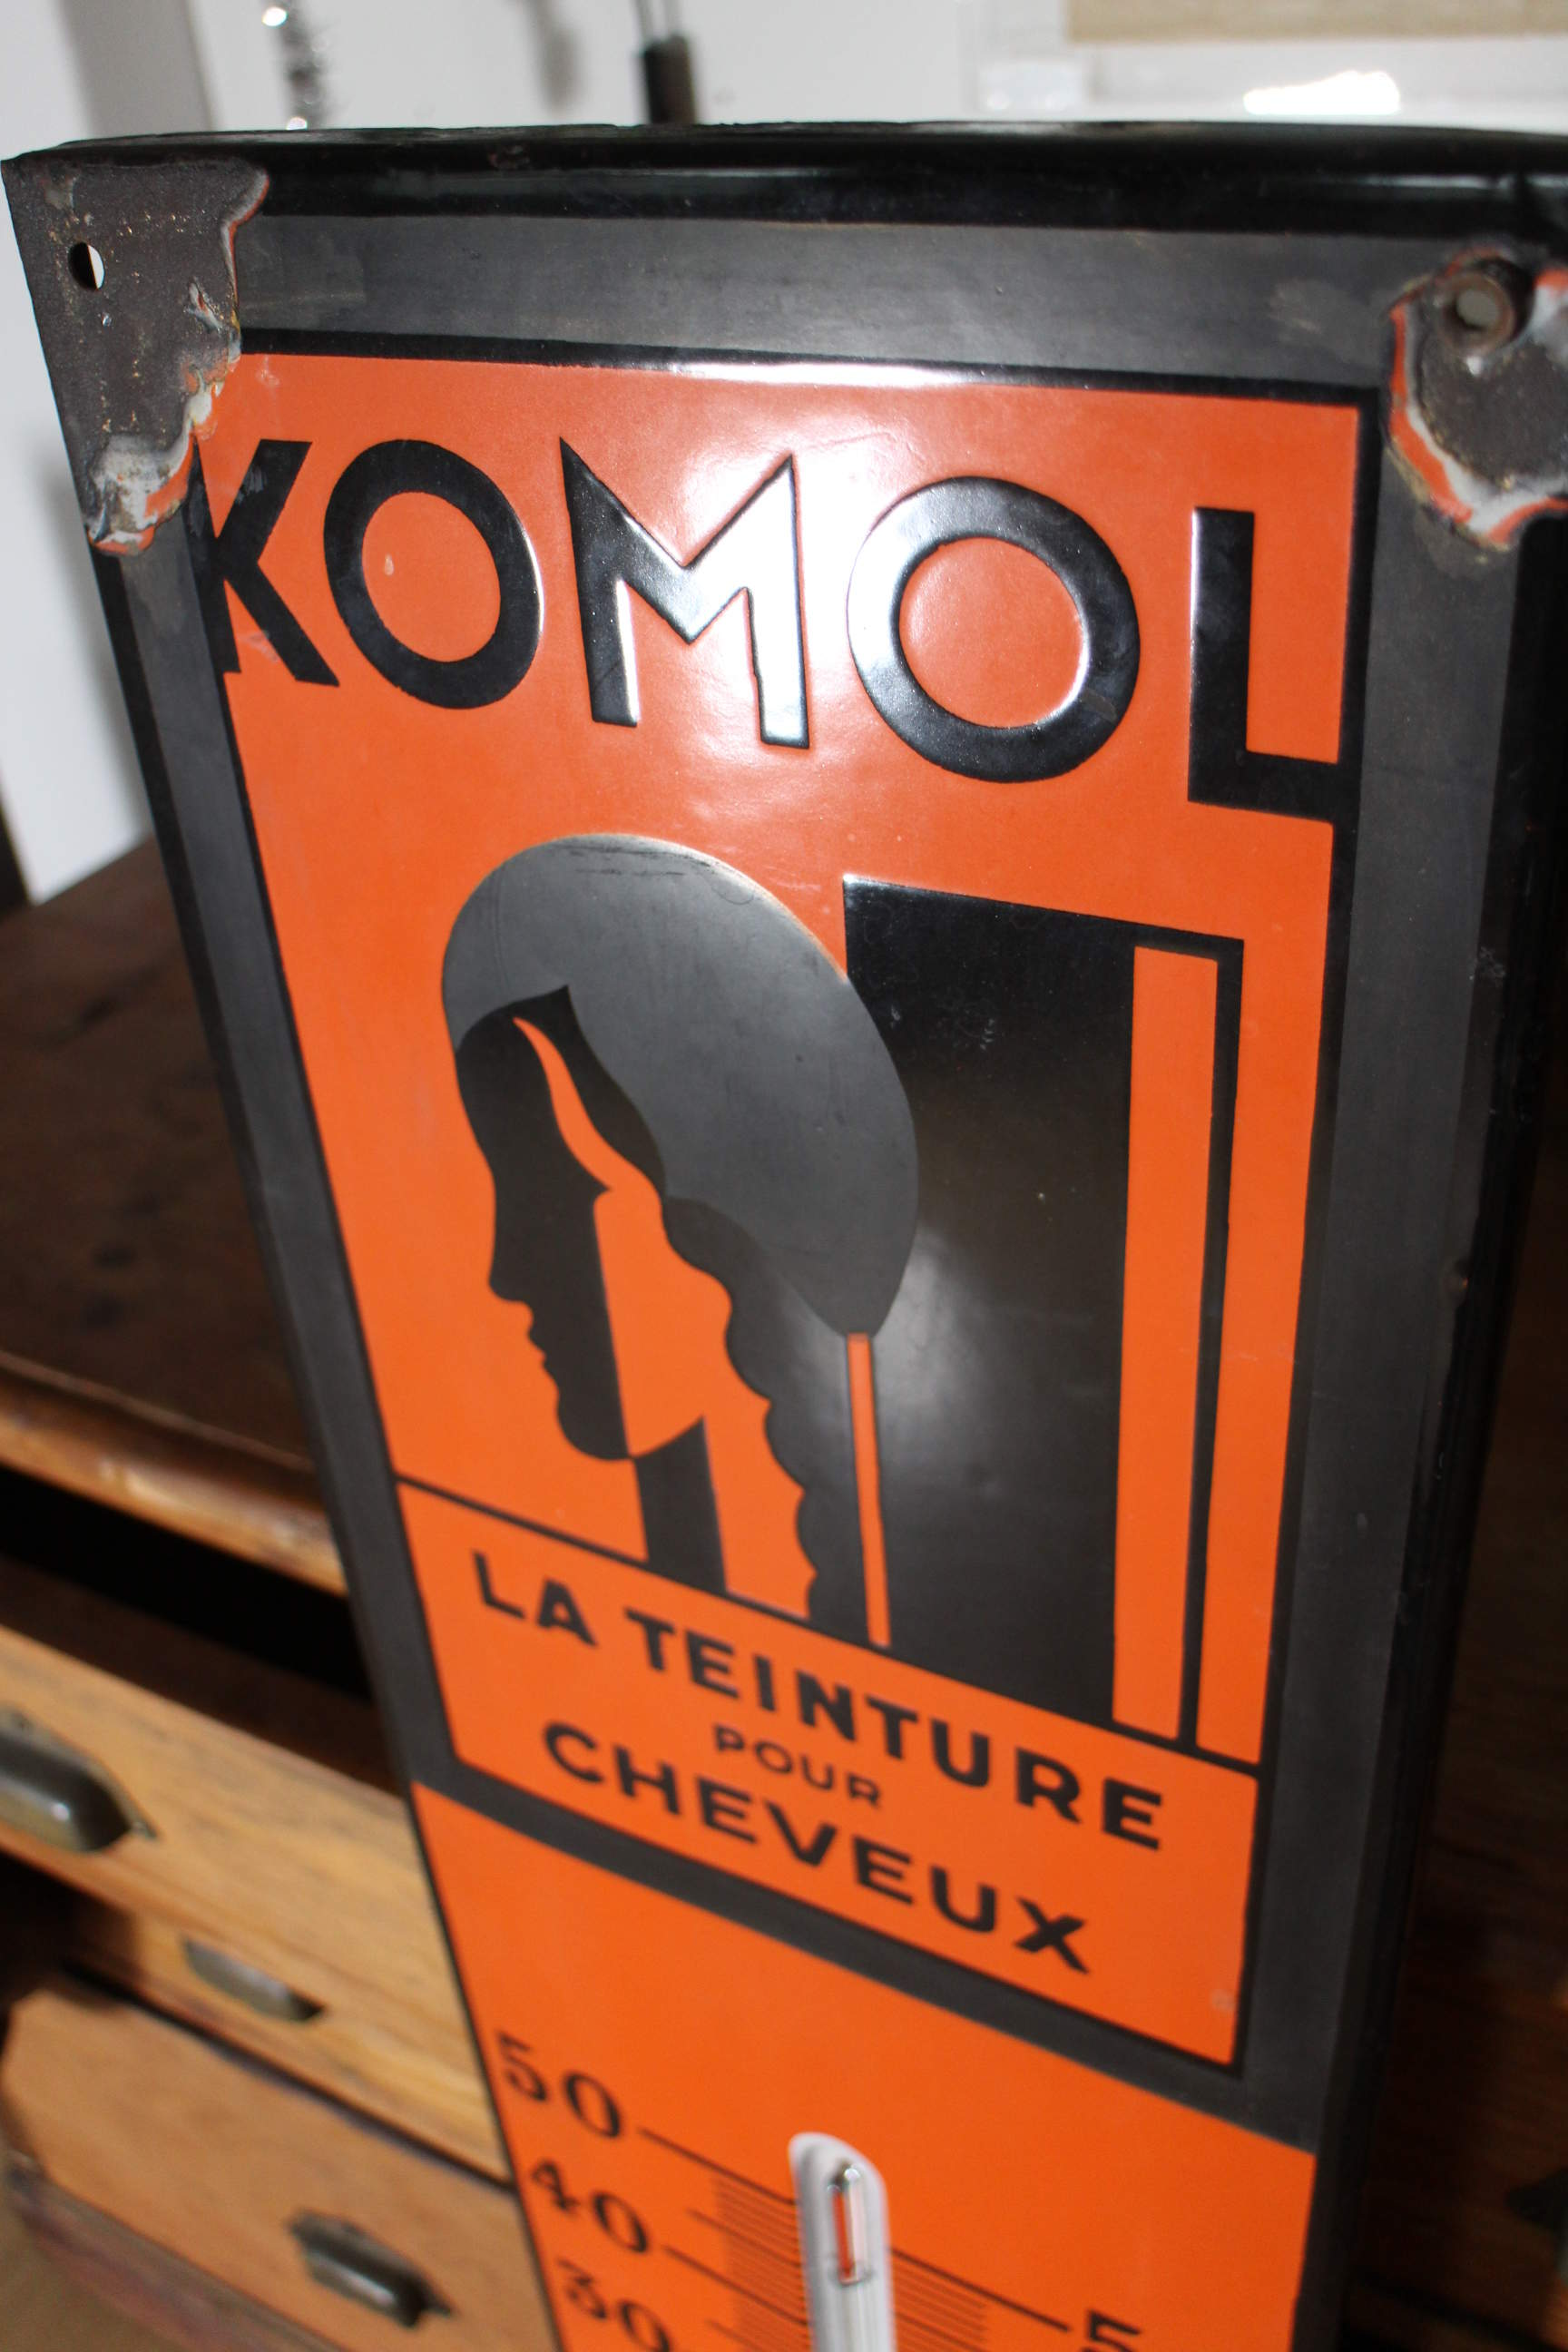 Komol Thermometer aus Emaille